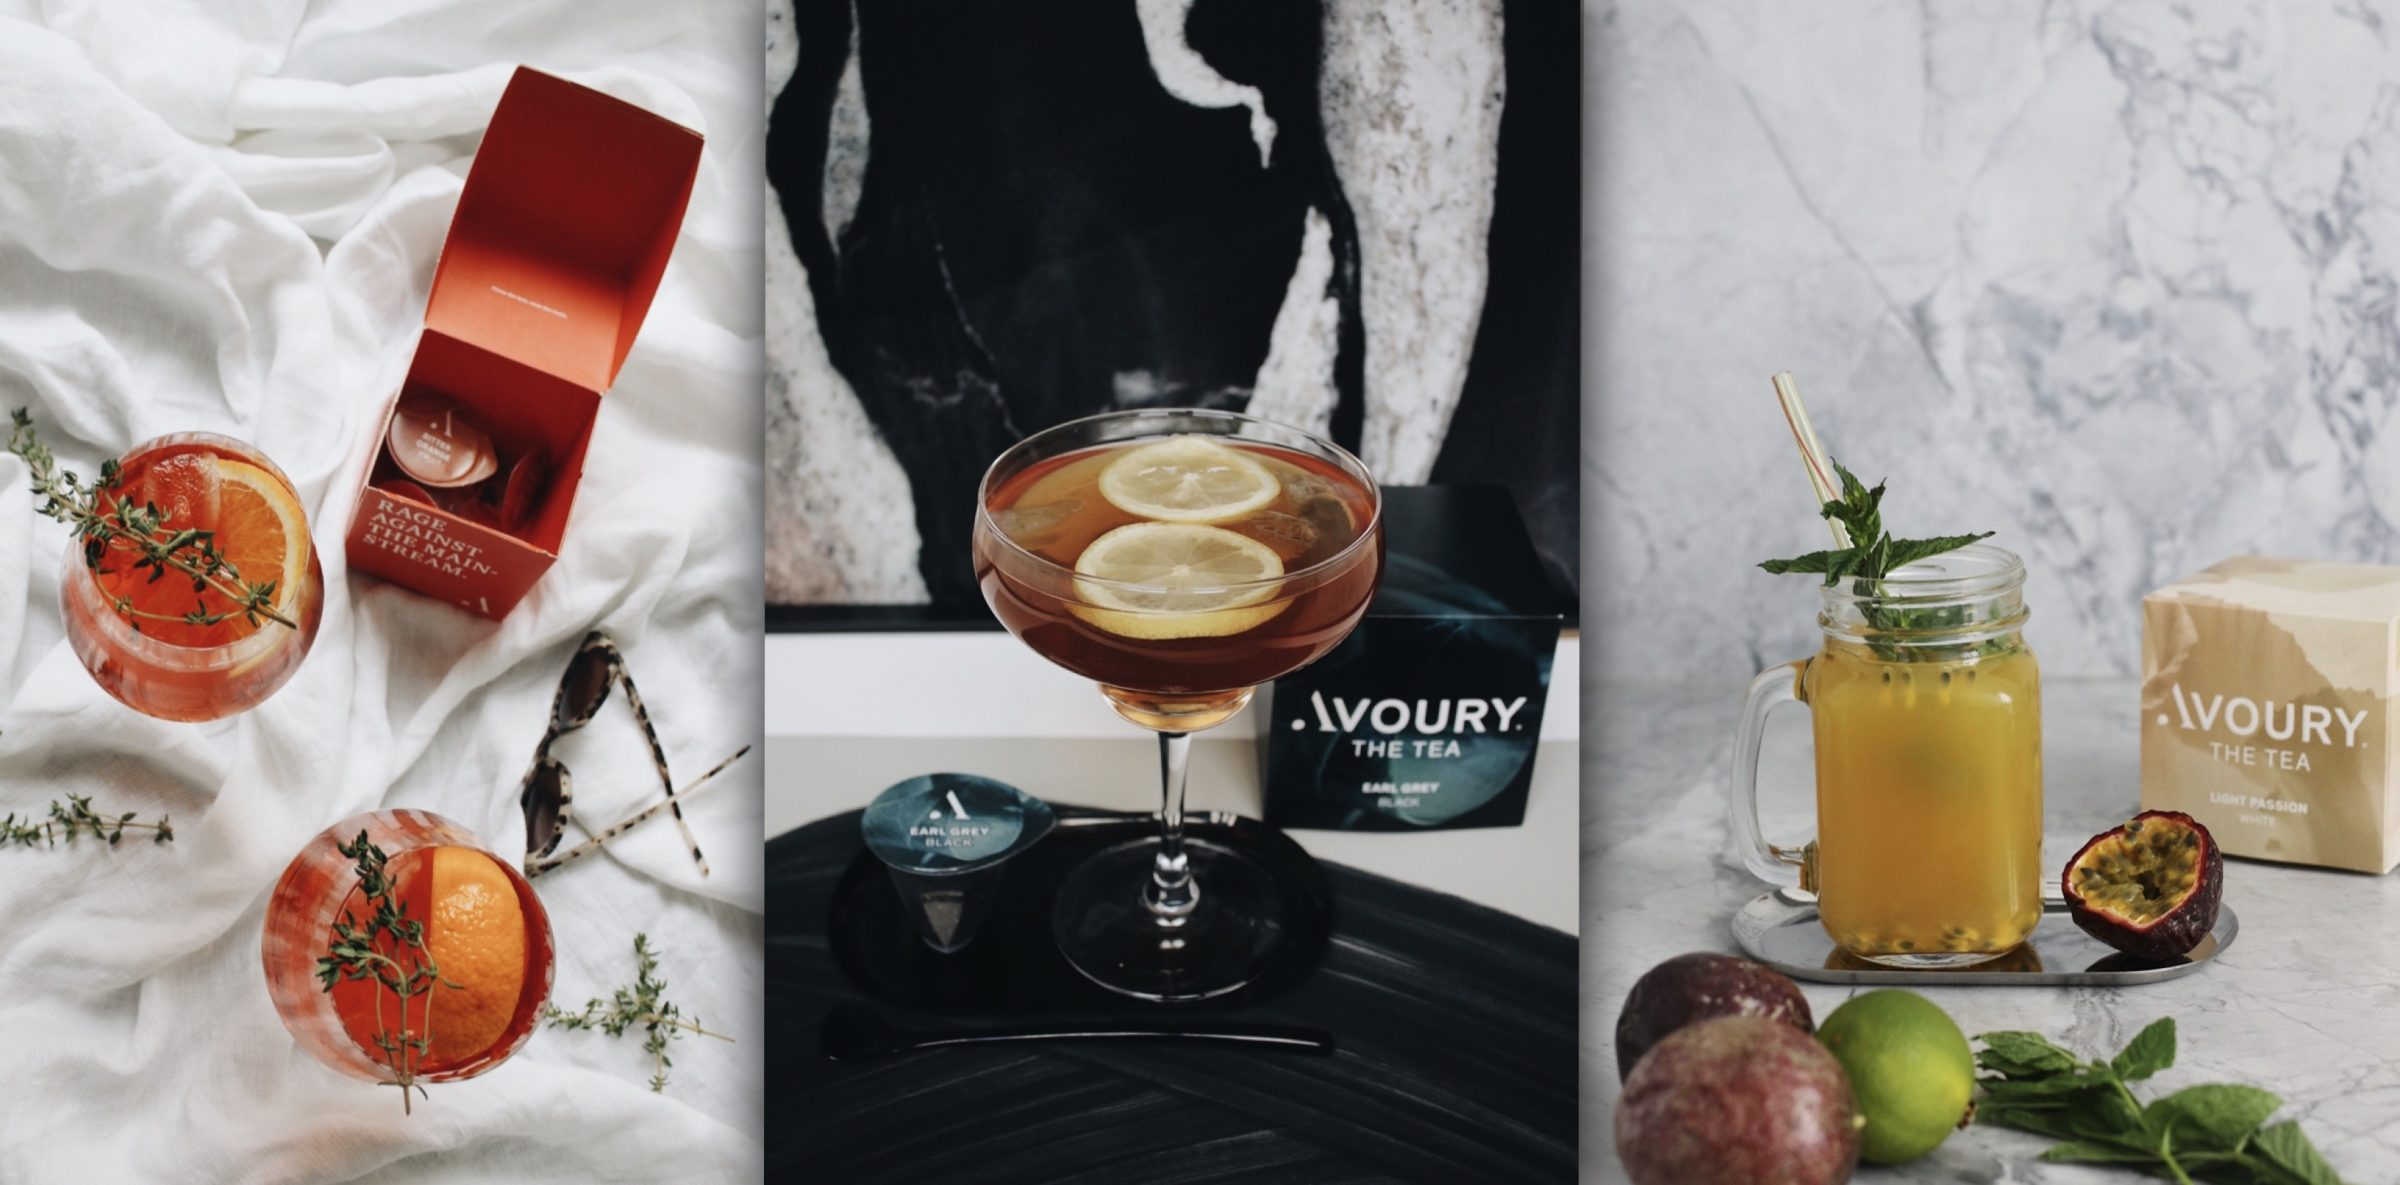 avoury-drinks-sebastian-header